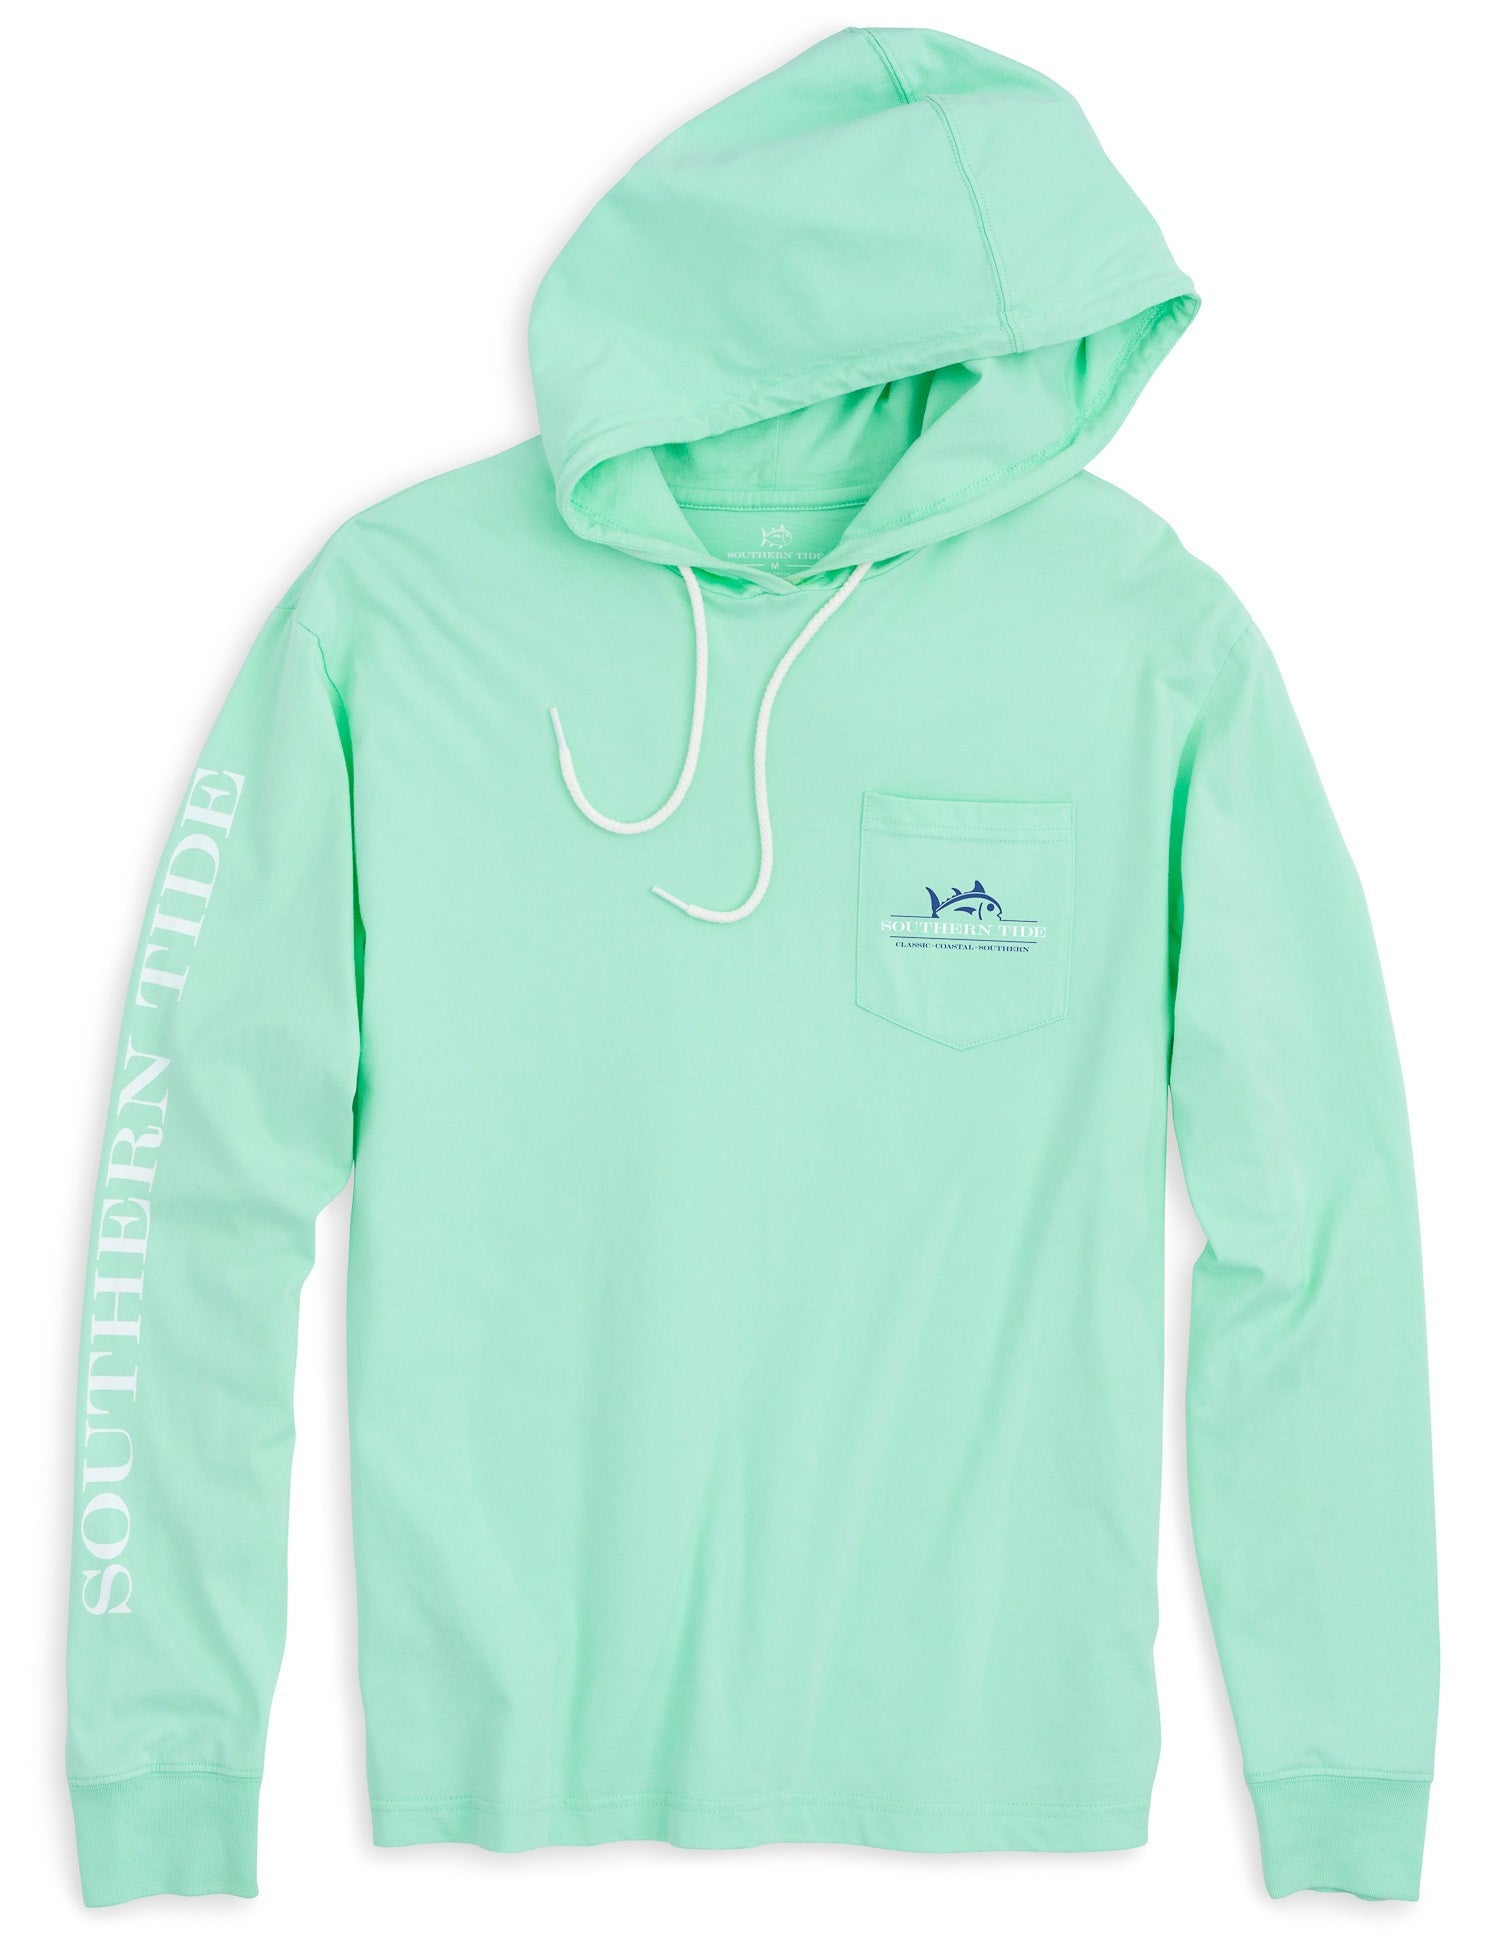 Southern Tide Rising Skipjack Long Sleeve Hoodie T-Shirt - Offshore Green Front View